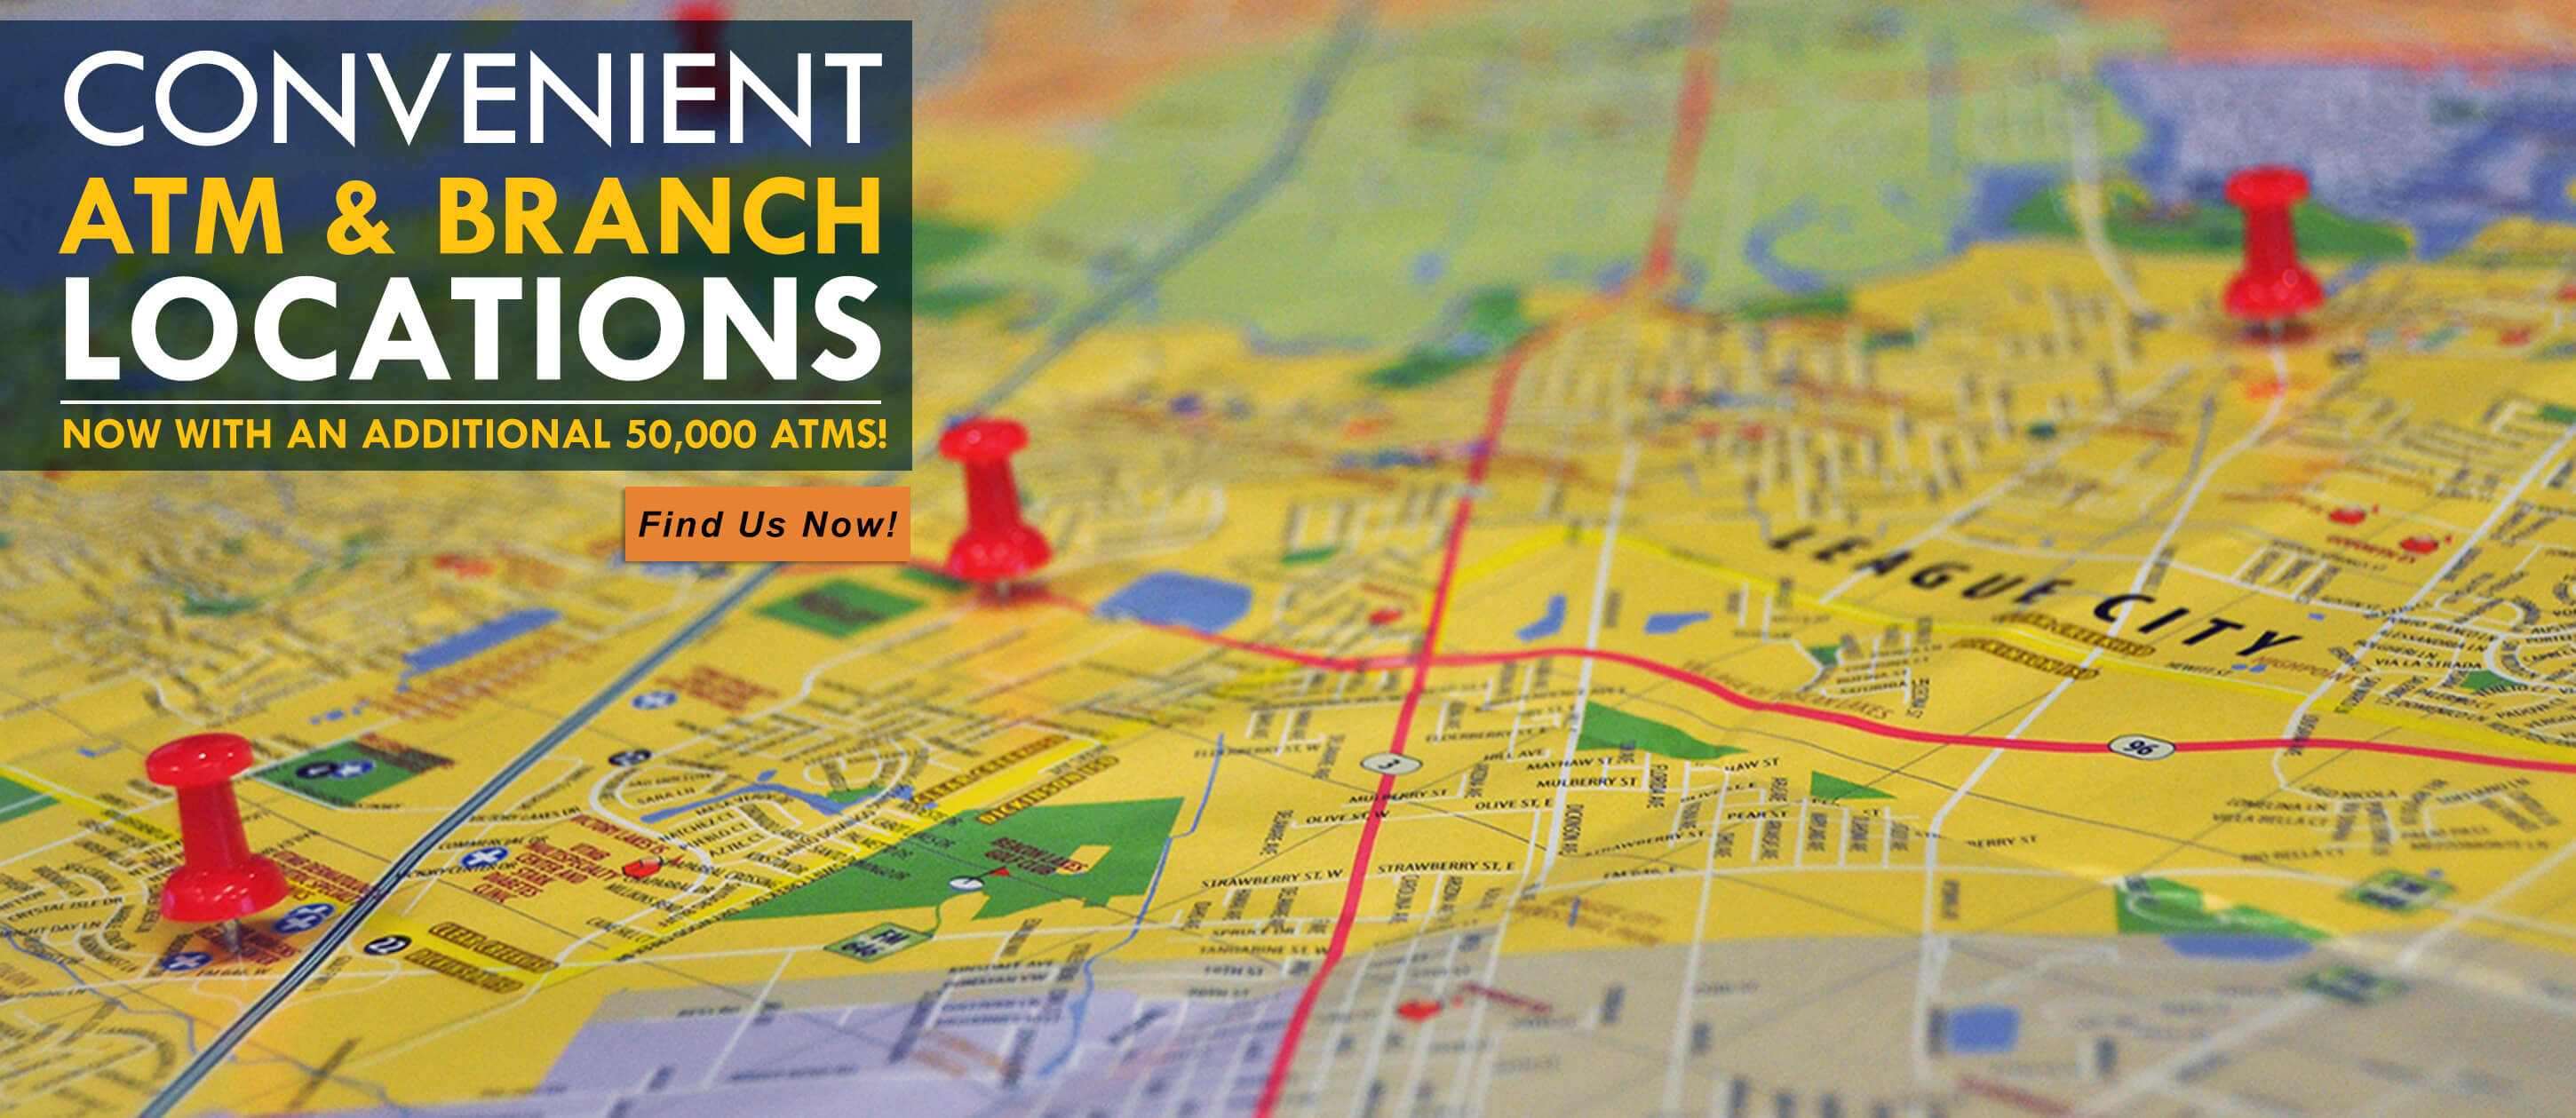 Convenient ATM and Branch Locations. Find us now!